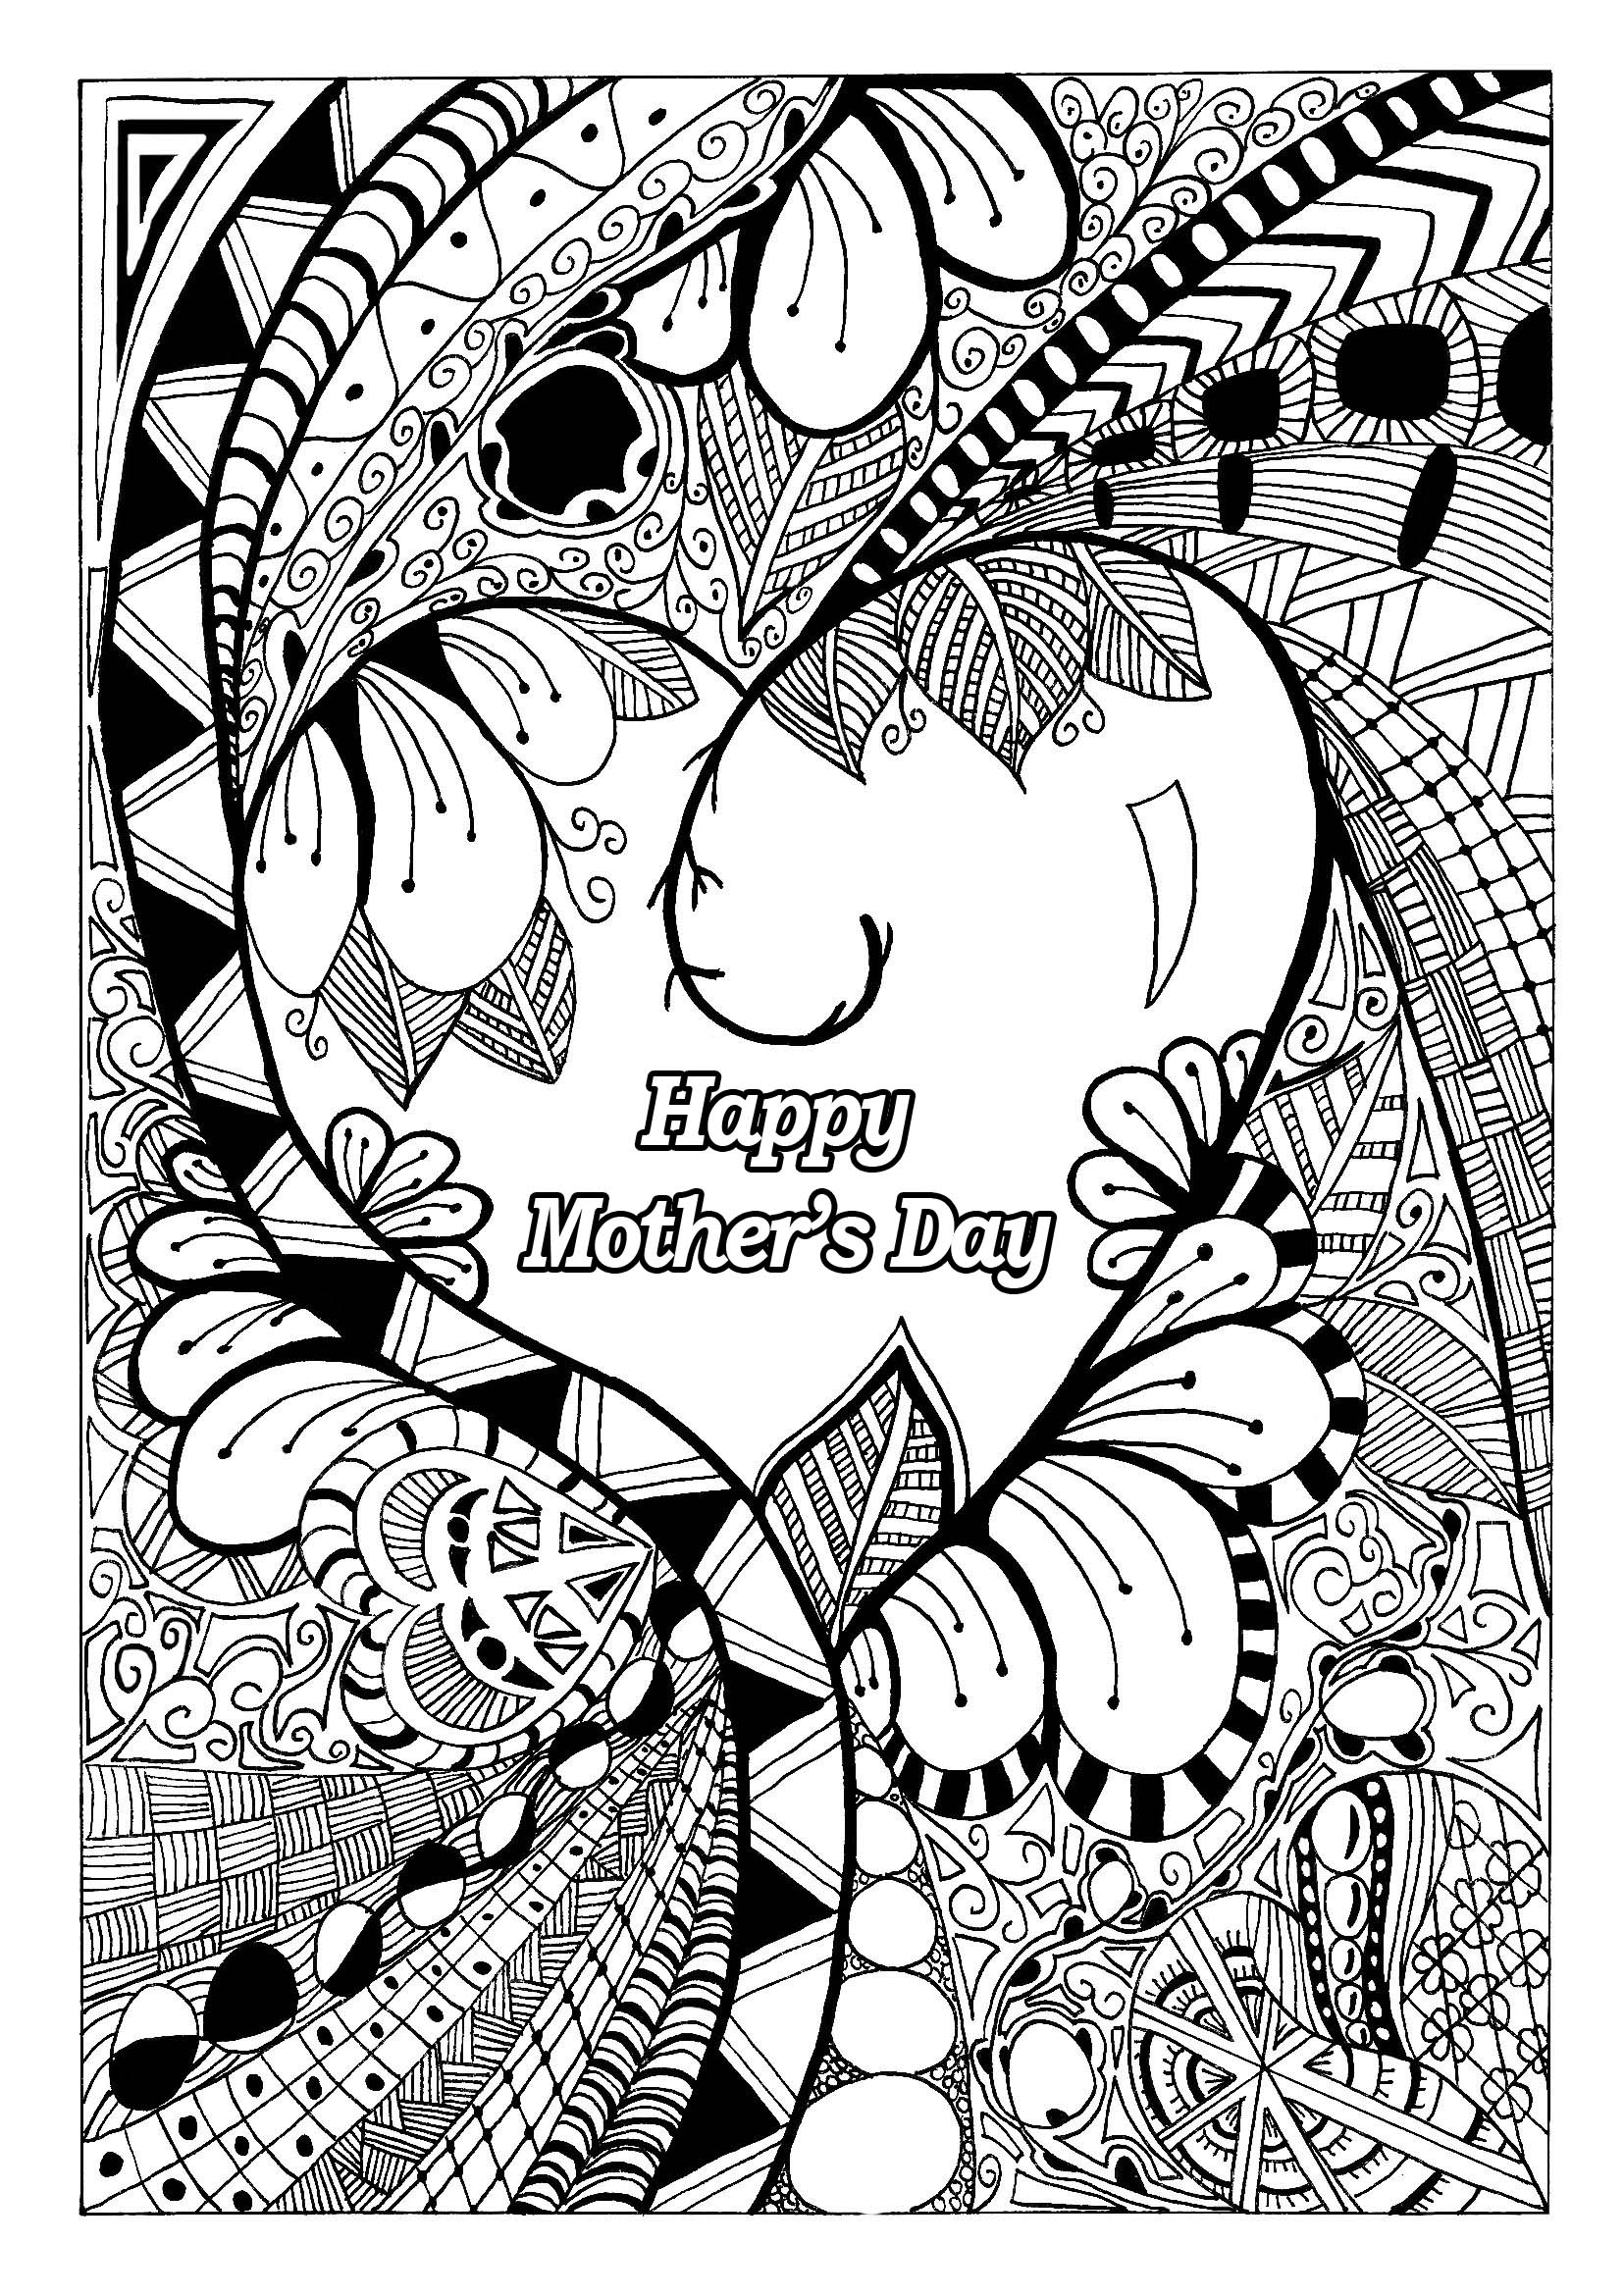 Mothers Day Coloring Page With Zentangle Patterns